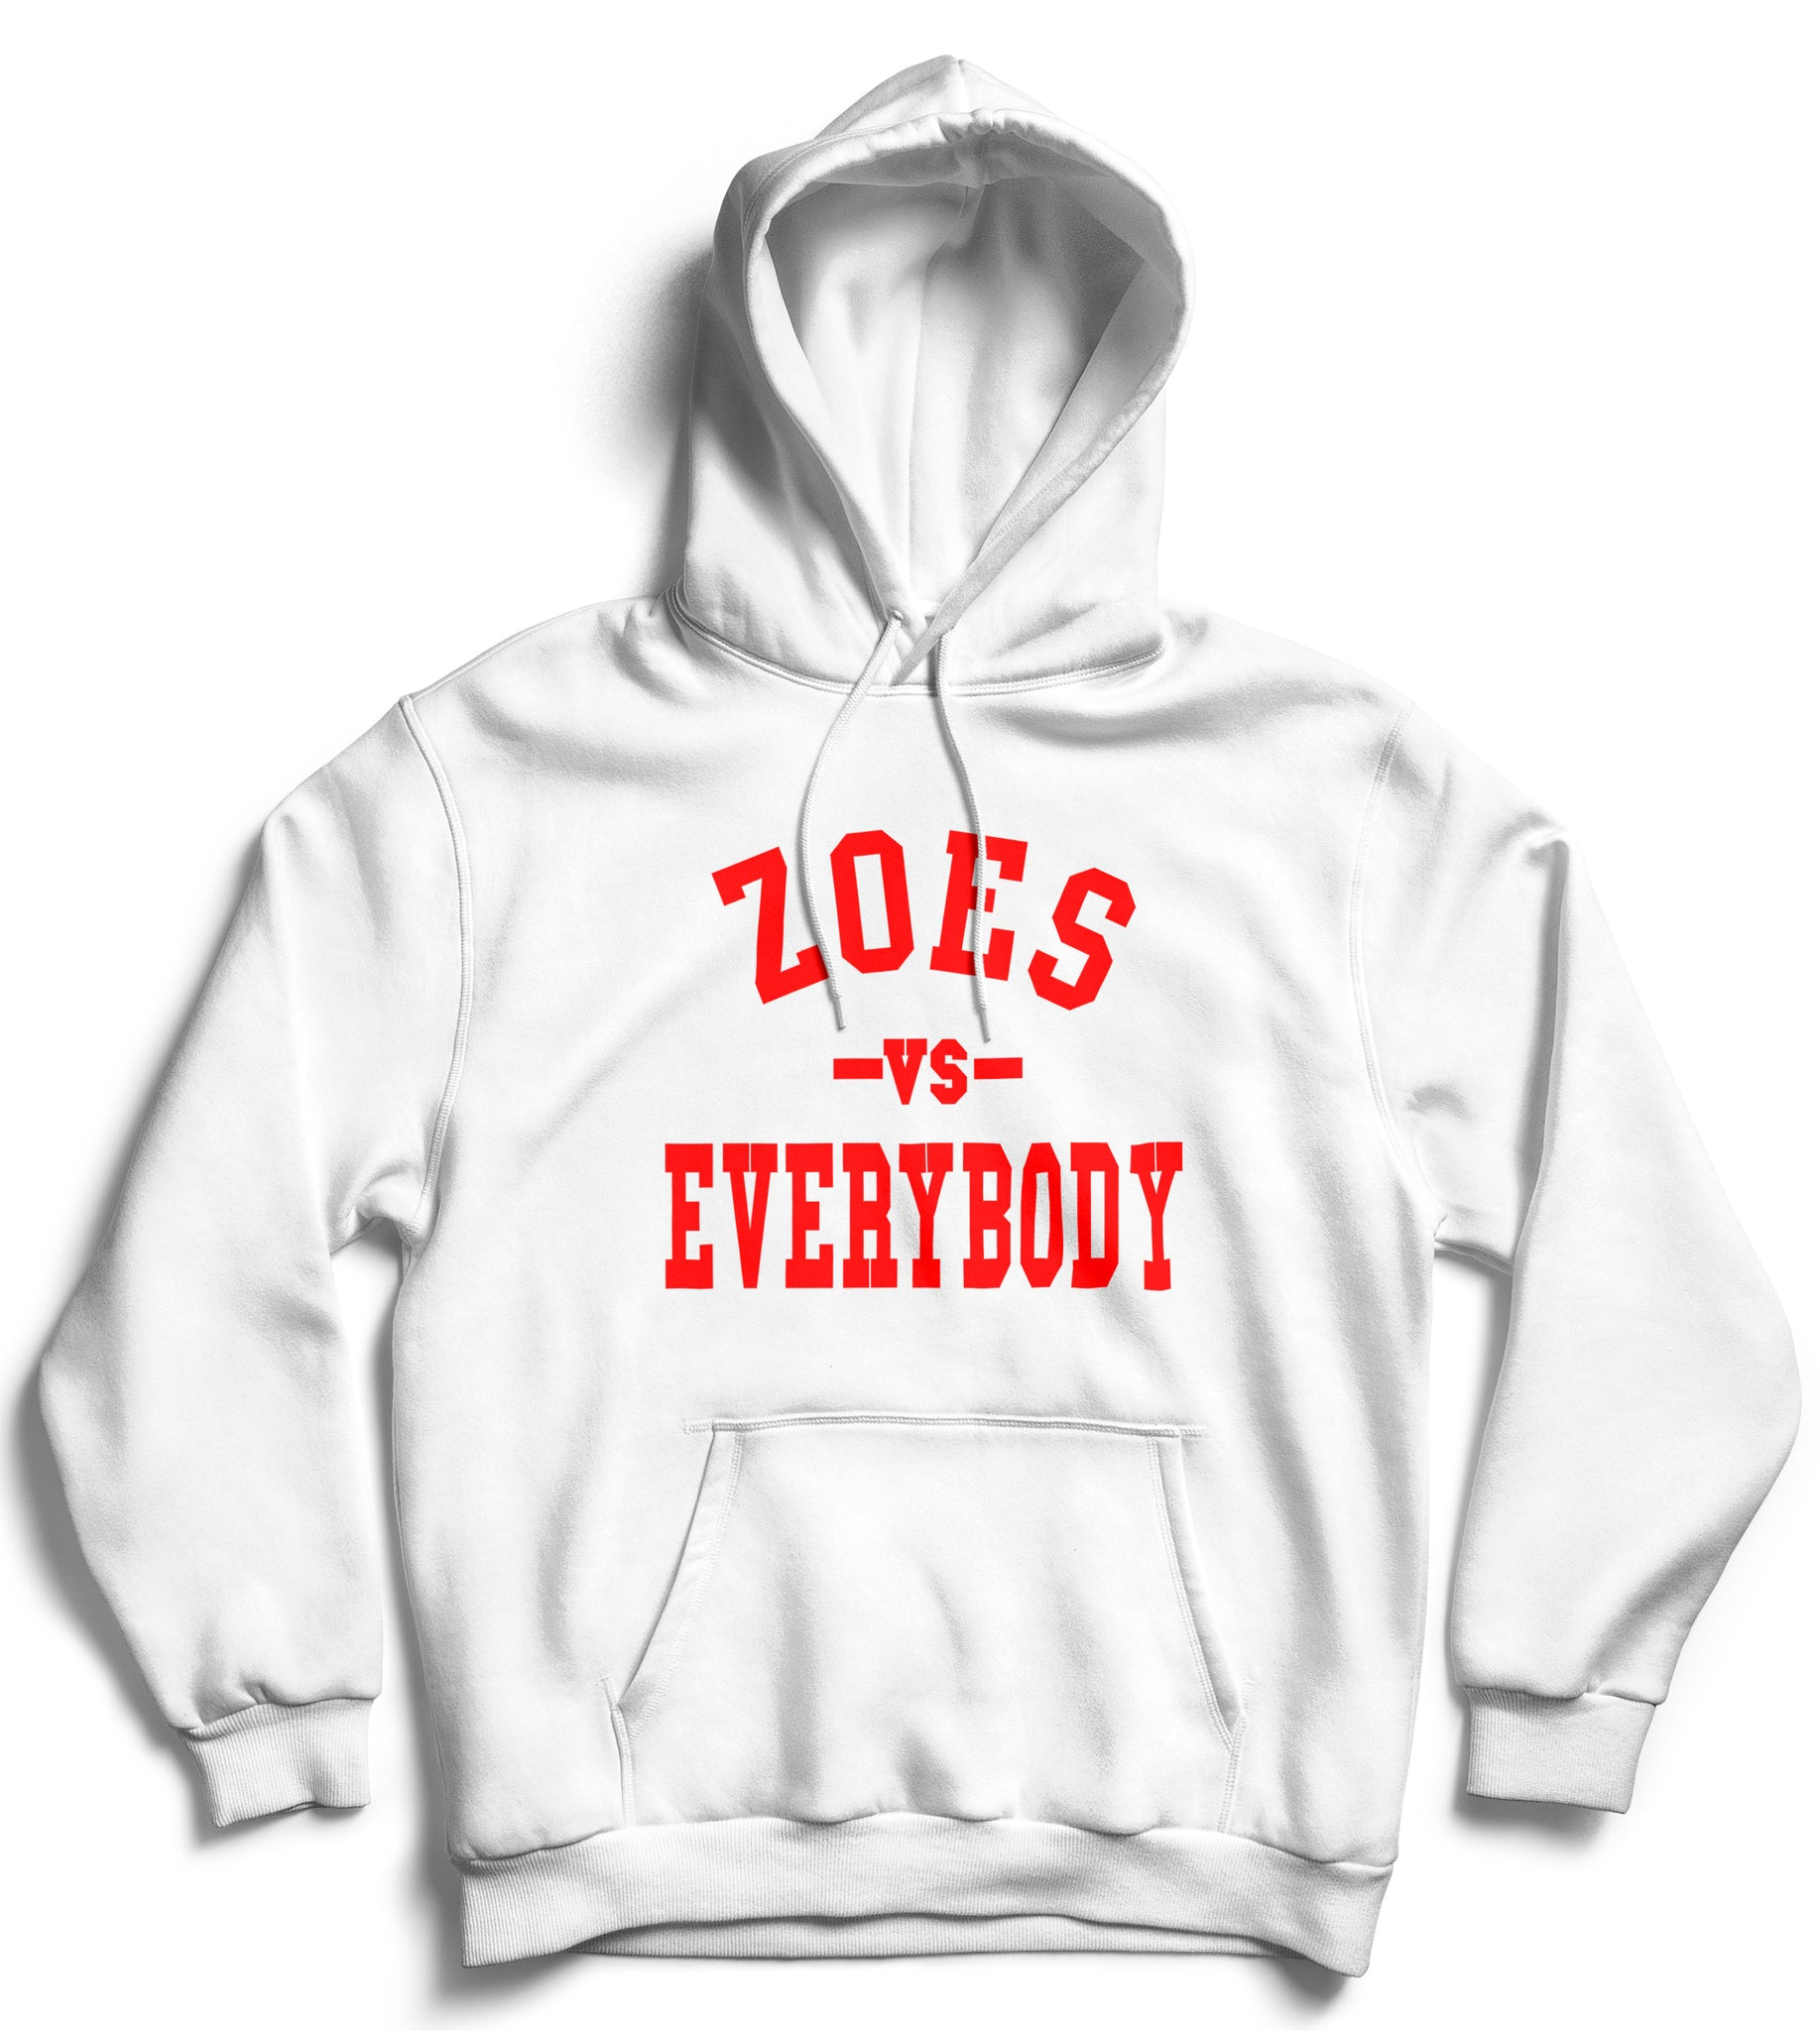 An all white hooded sweatshirt with the words Printed Zoes Vs Everbody on the front in red.